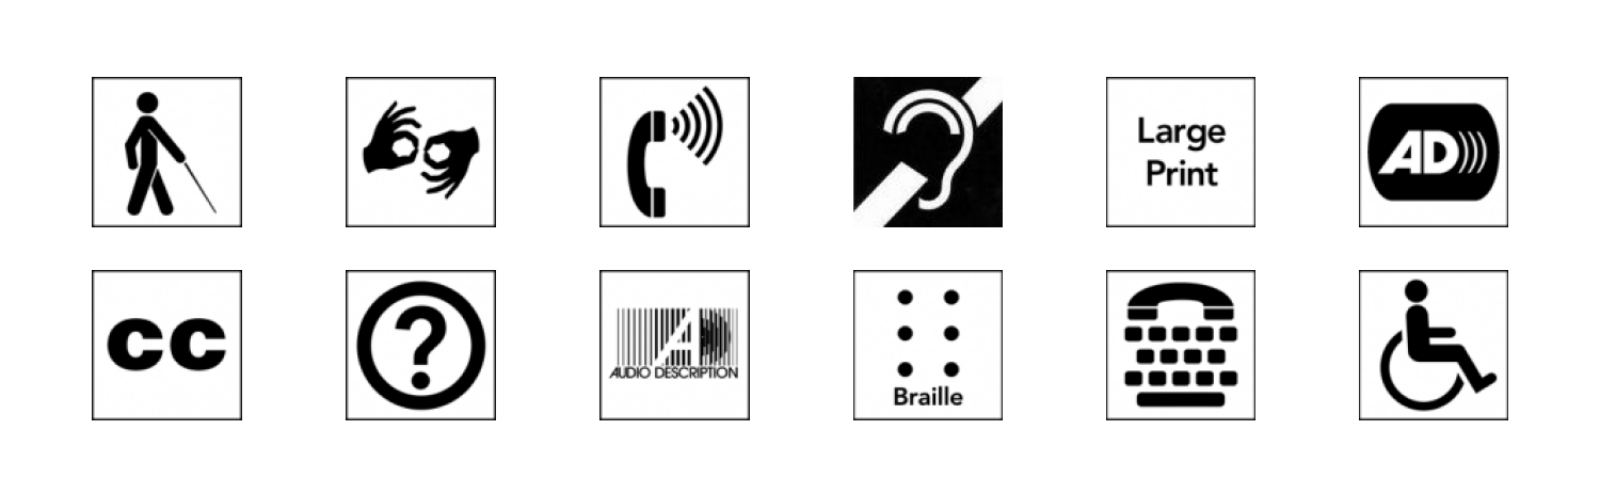 A grid of disability access symbols—access to low vision, sign language, access for hearing loss, accessible print, etc.